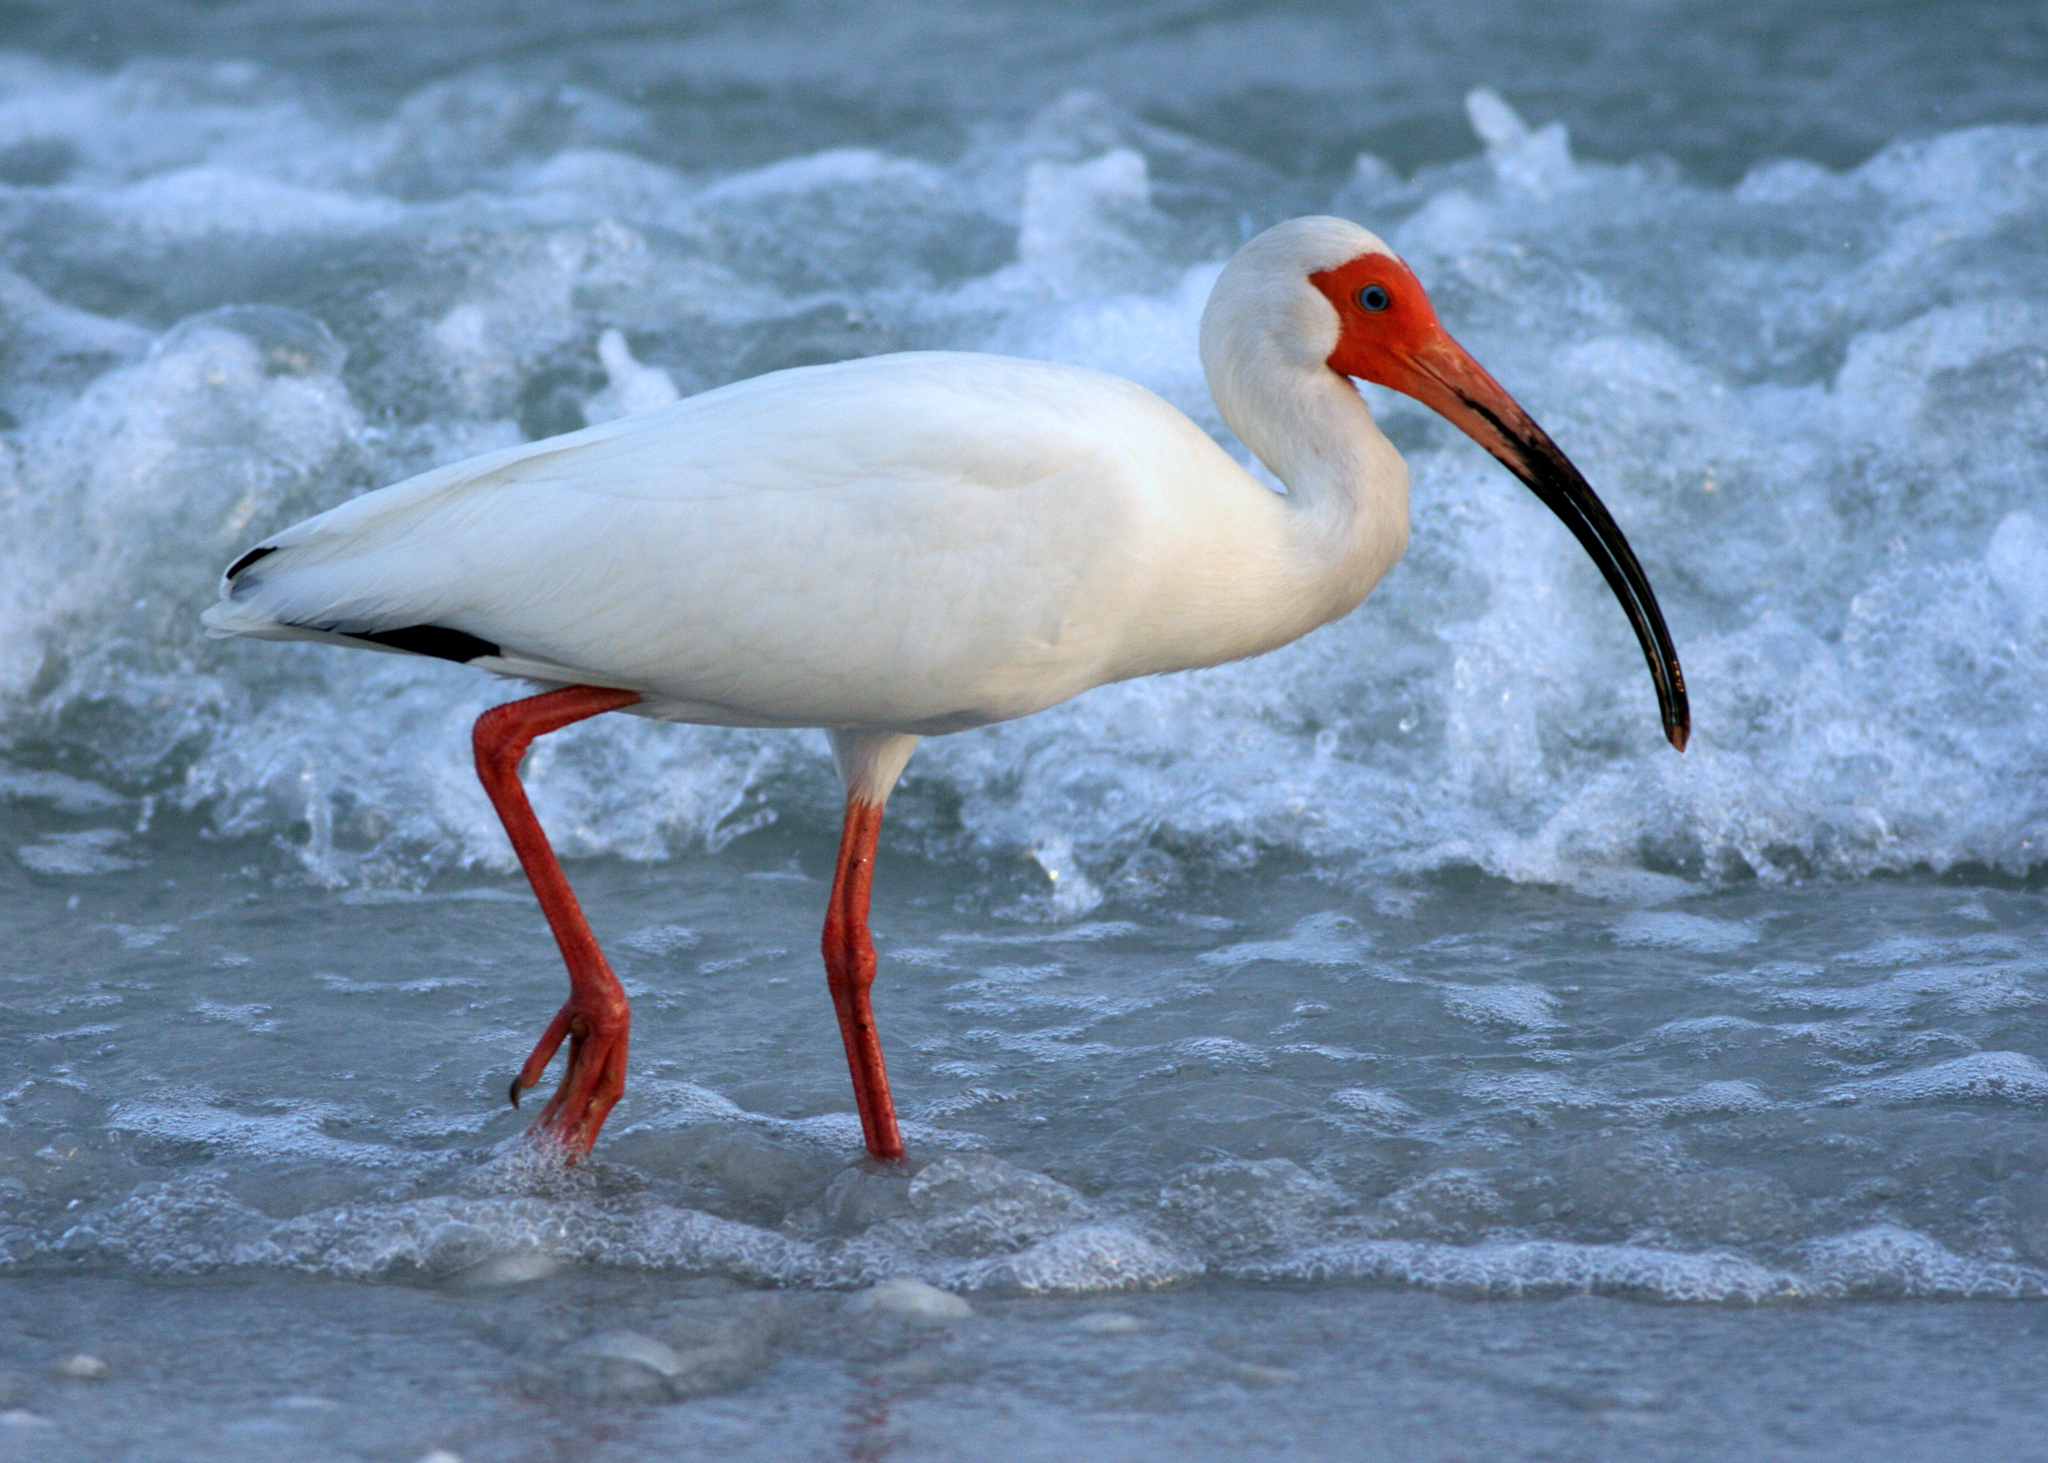 White Ibis in the Florida Ocean Surf